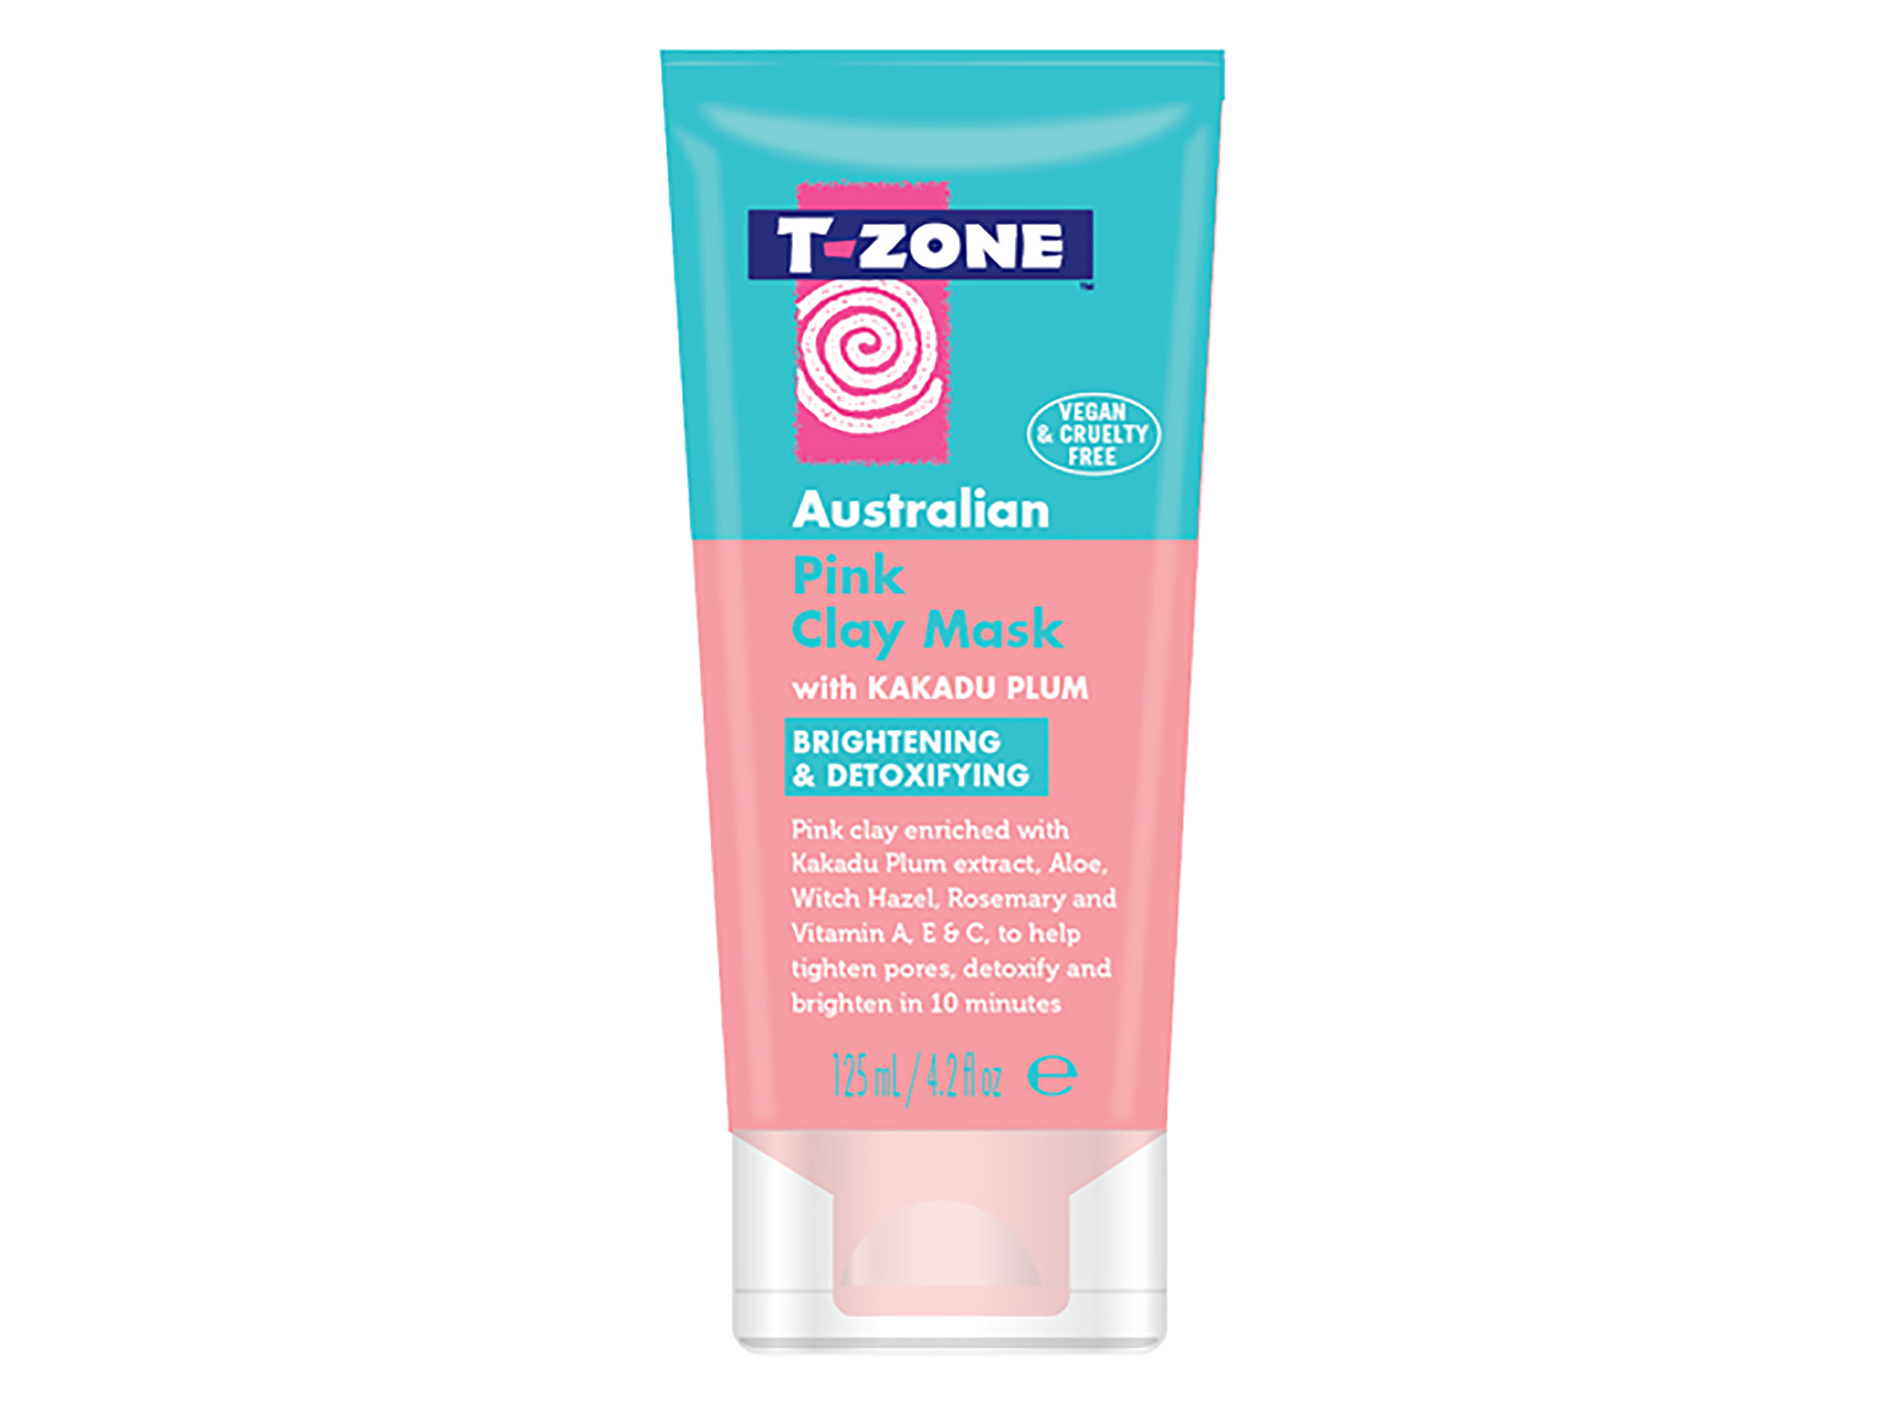 T-Zone Australian Pink Clay Mask,$18 - Blowing up on Instagram, we can't get enough of this skin brightening and detoxifying concoction. Stacked with Kakadu plum extract and vitamins A, C, and E, hydrating aloe, and skin tightening witch hazel, and rosemary, it's a mask that makes skin look instantly clear. Oh and did we mention it's vegan and cruelty-free, #respect.